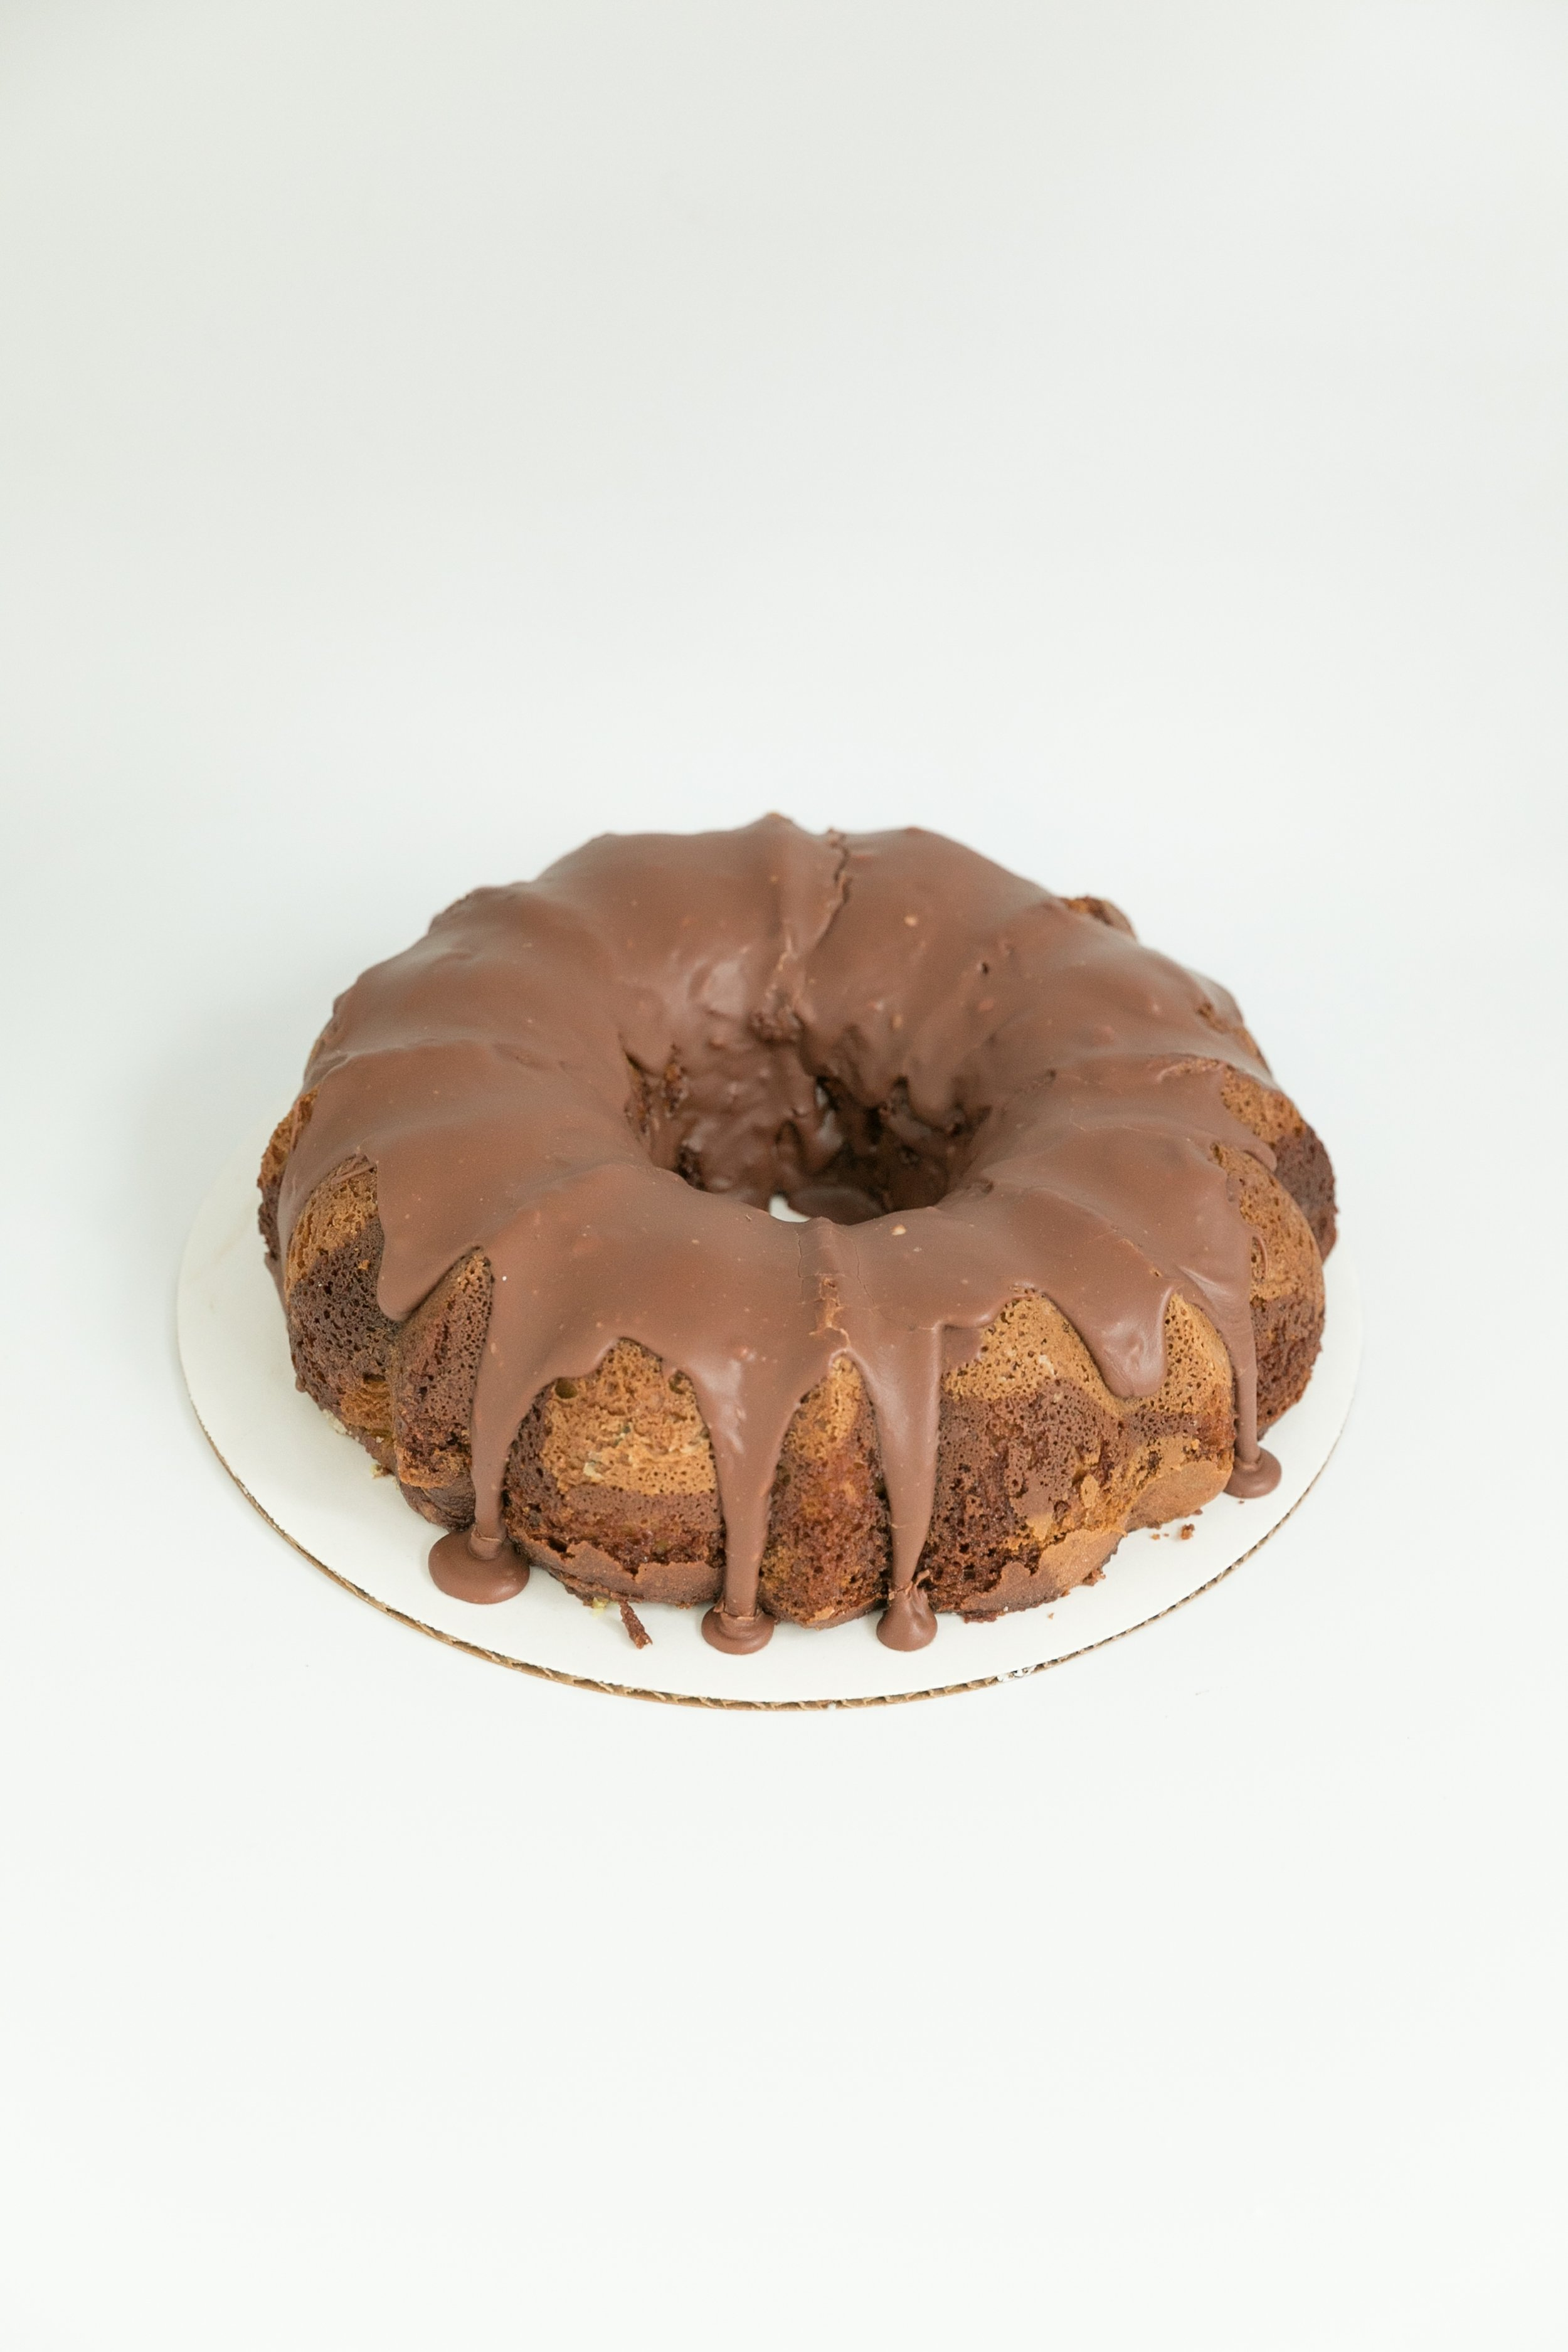 Old-fashioned pistachio bundt cake topped with a chocolate ganache.